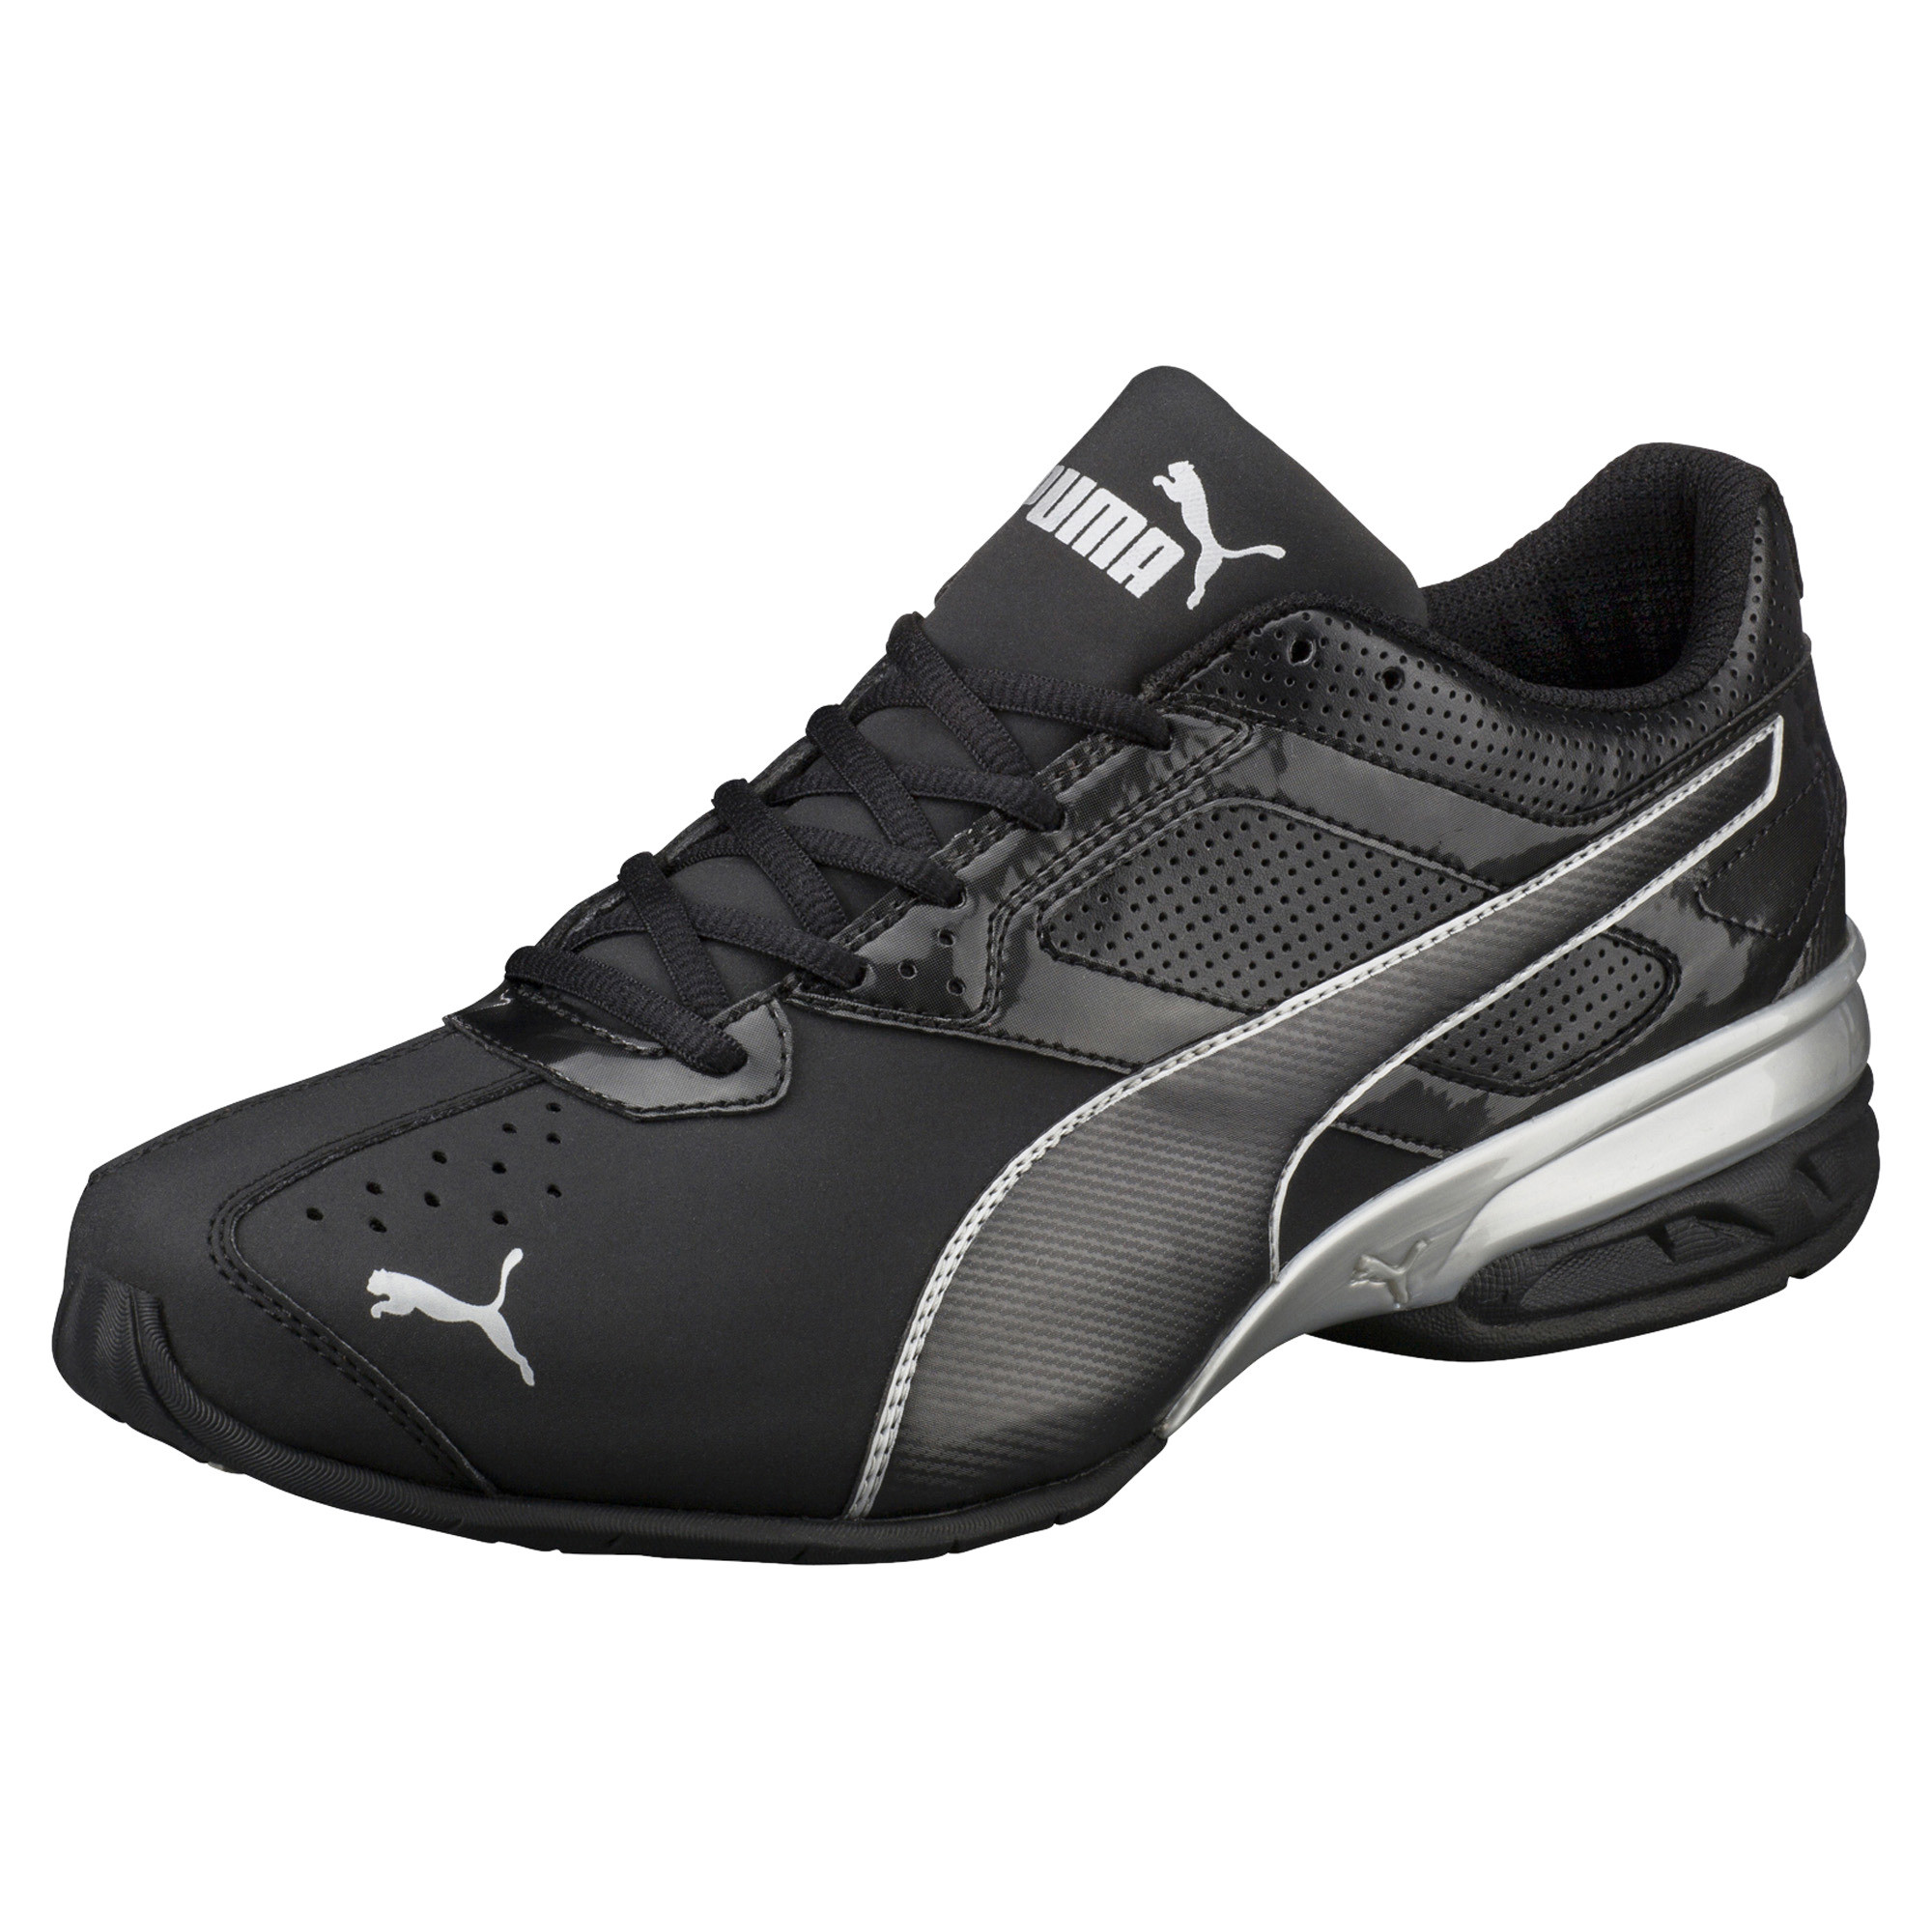 PUMA-Tazon-6-FM-Men-039-s-Sneakers-Men-Shoe-Running thumbnail 9